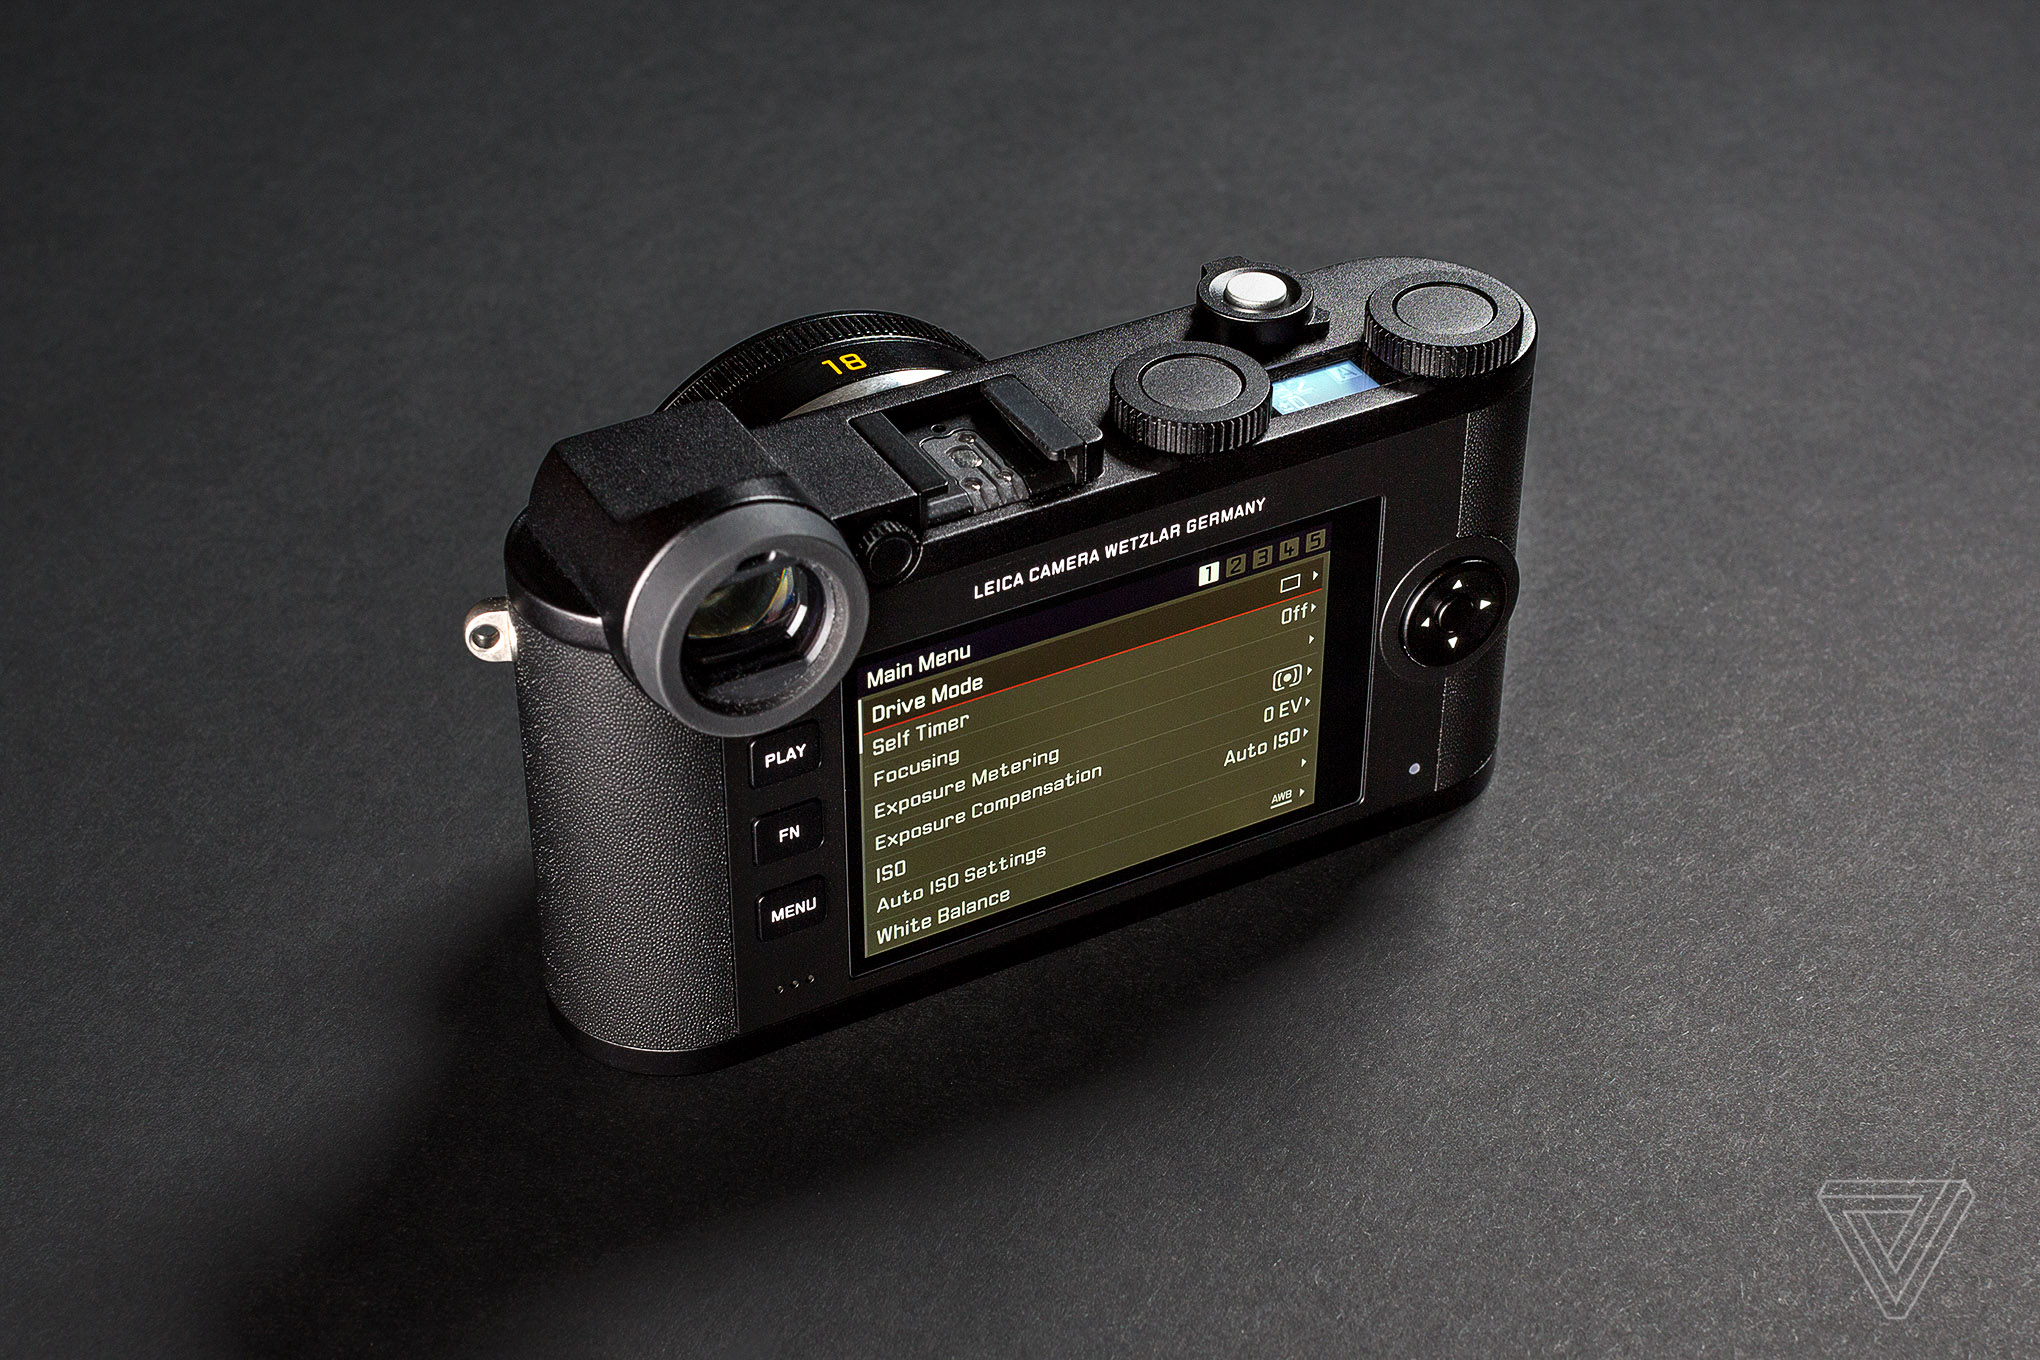 Leica S New Cl Is A Small Mirrorless Camera With Vintage